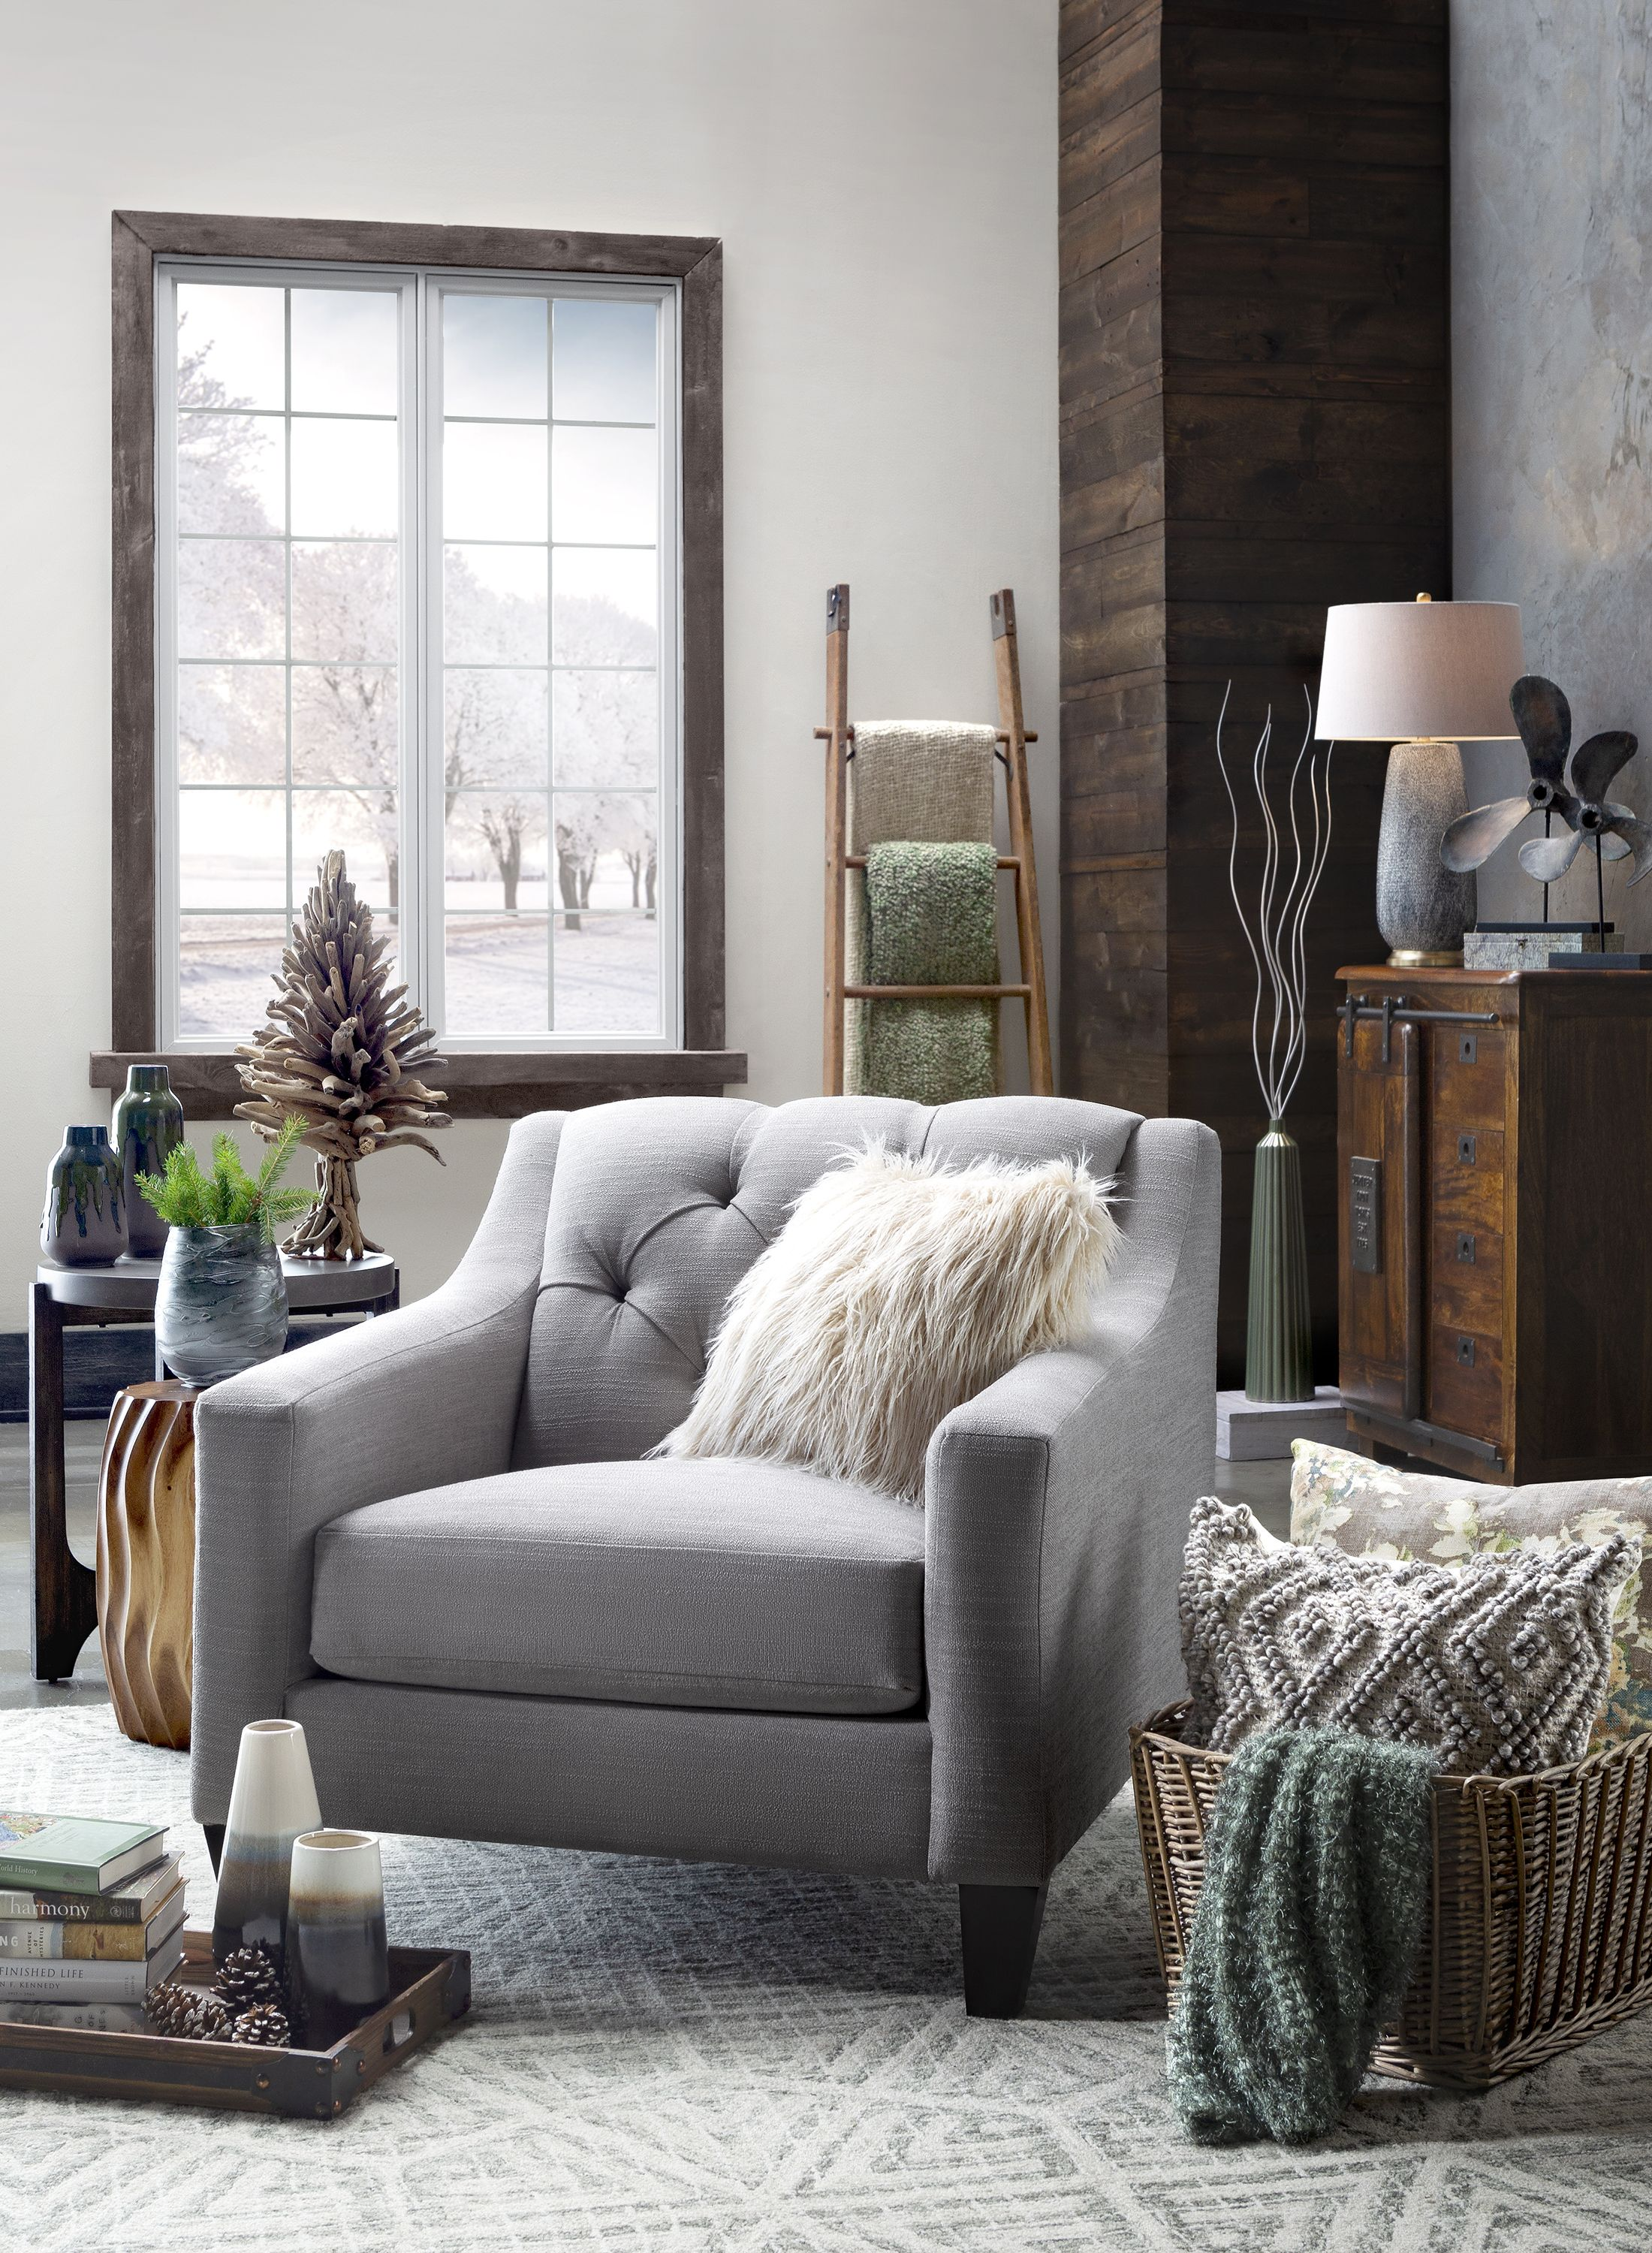 Densmore Chair Gray Living Room Chair Raymour Flanigan In 2020 Small Room Decor Grey Chair Living Room Living Room Chairs #small #armchair #for #living #room